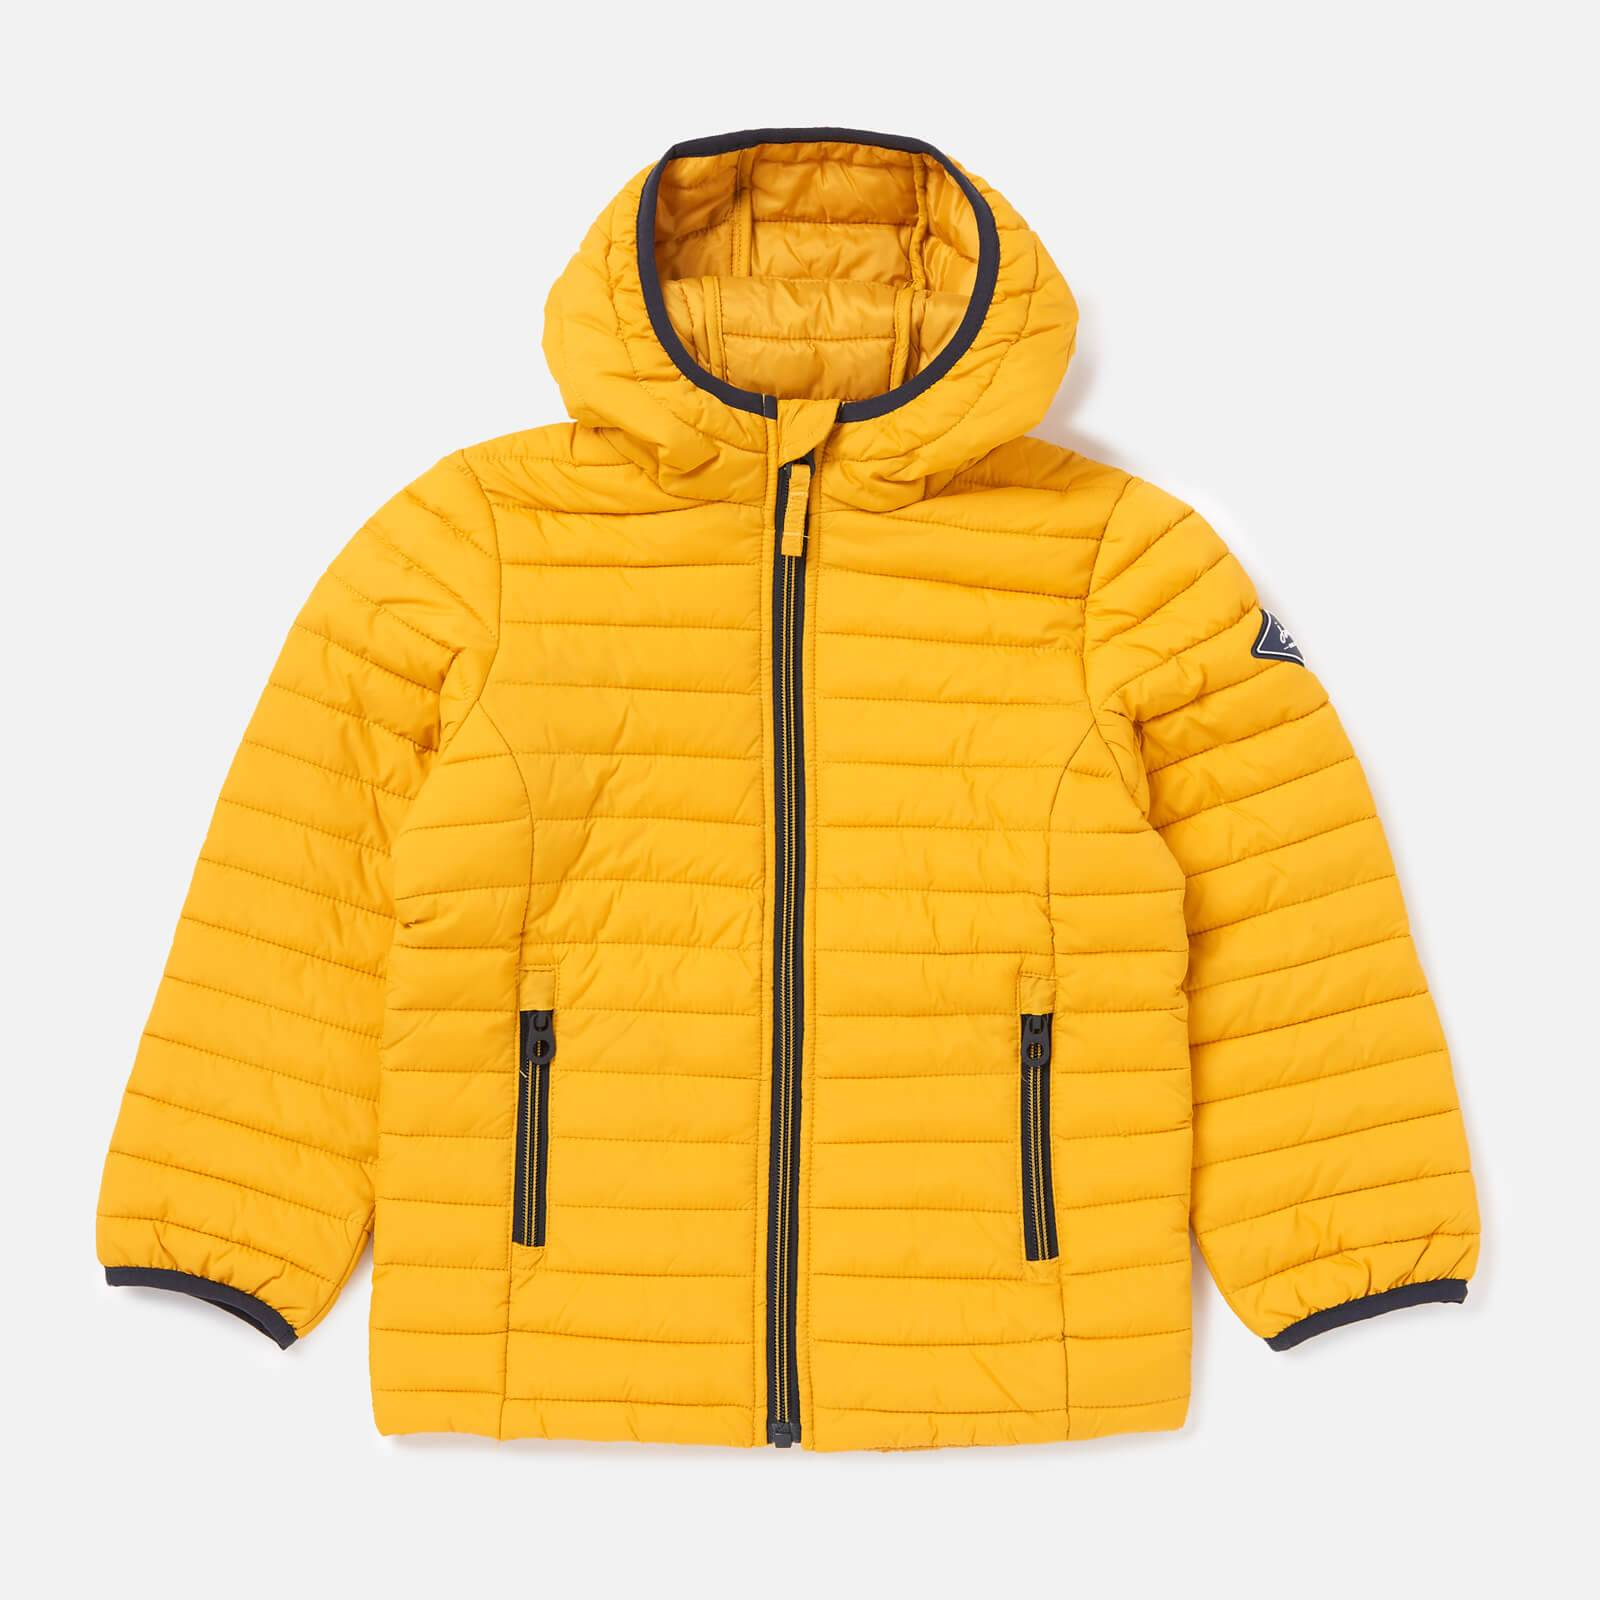 Joules Boys' Cairn Packaway Jacket - Antique Gold - 4 Years